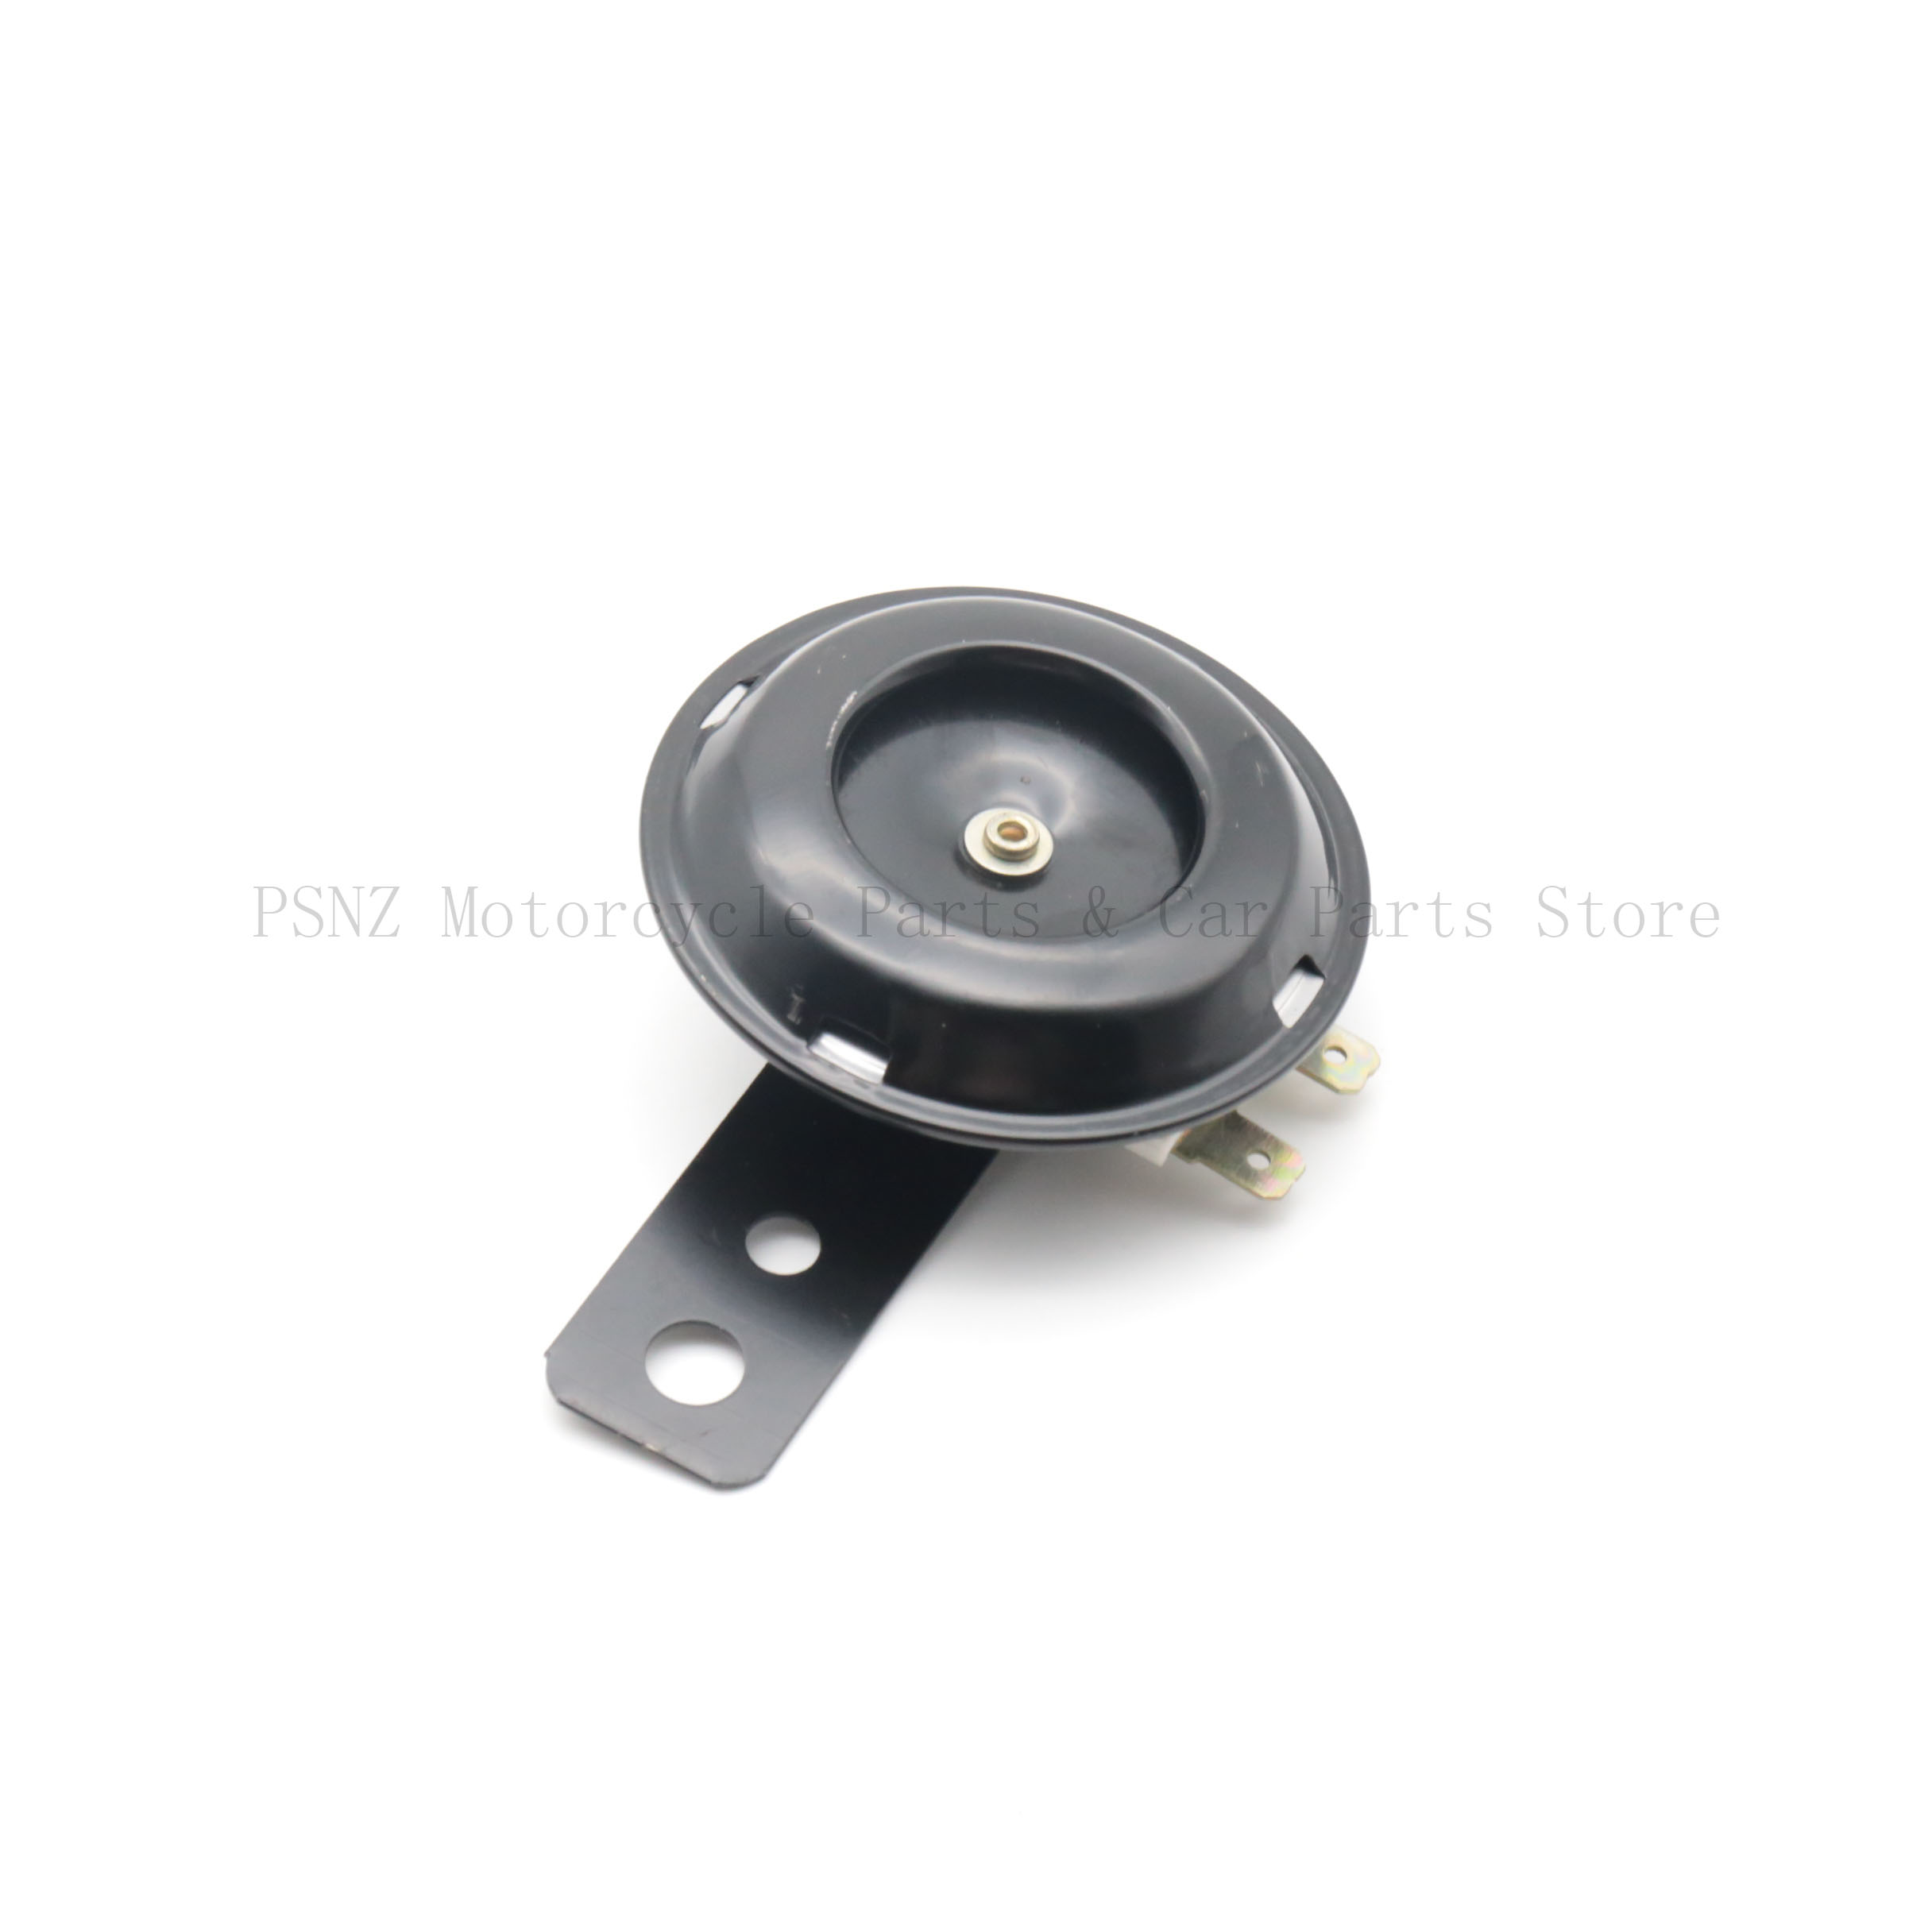 Universal Motorcycle Electric Horn kit 12V 1.5A 105db Round Loud Horn Speaker E